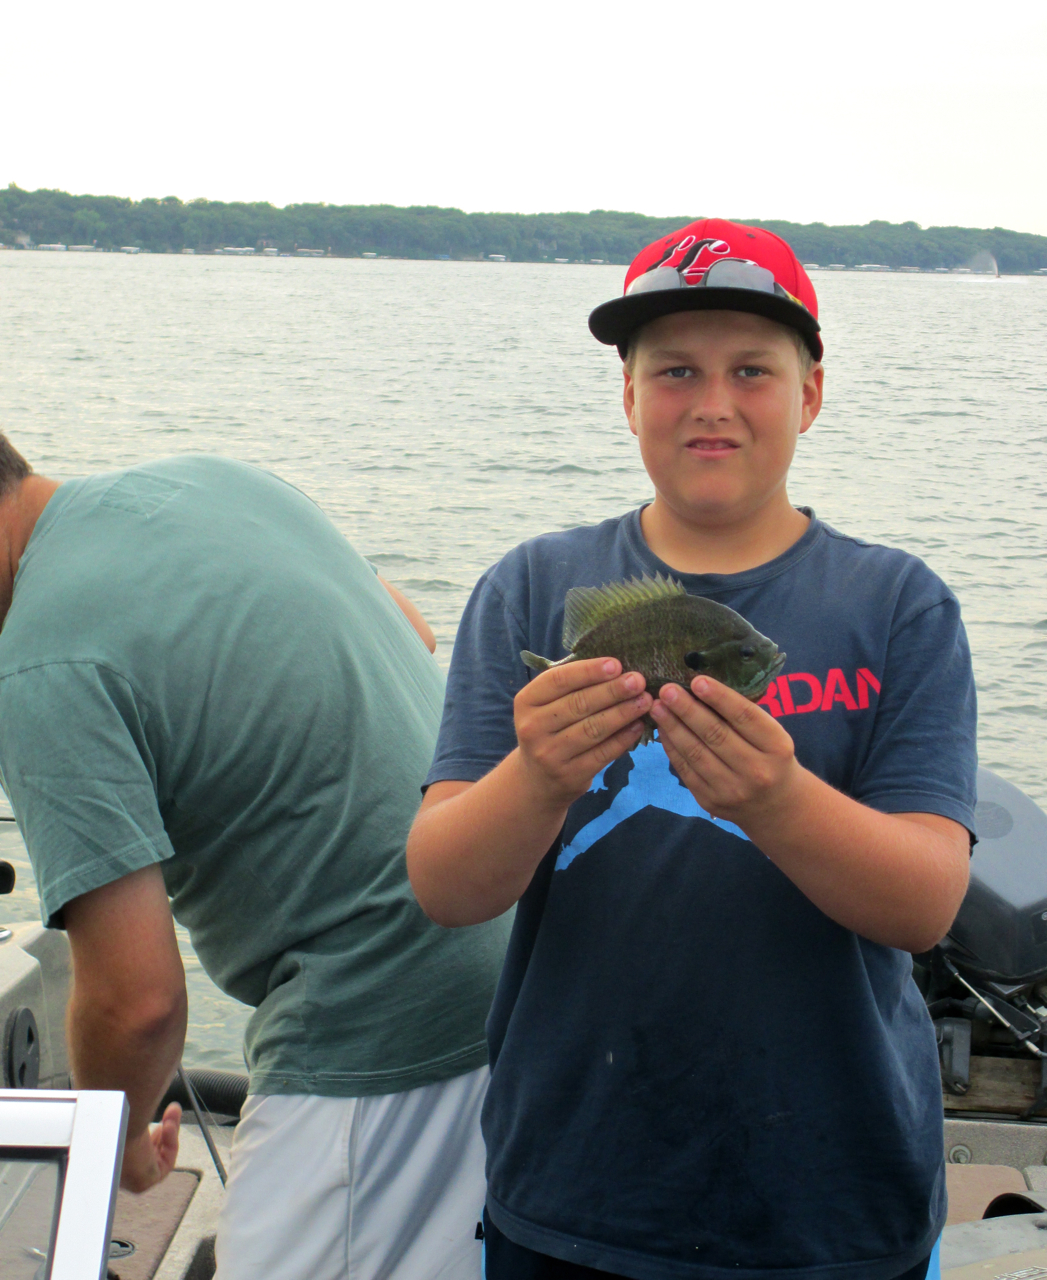 (photo by Steve Weisman) The author's grandson, Hunter with a nice bluegill taken on a Shuck's Jigger Minnow.